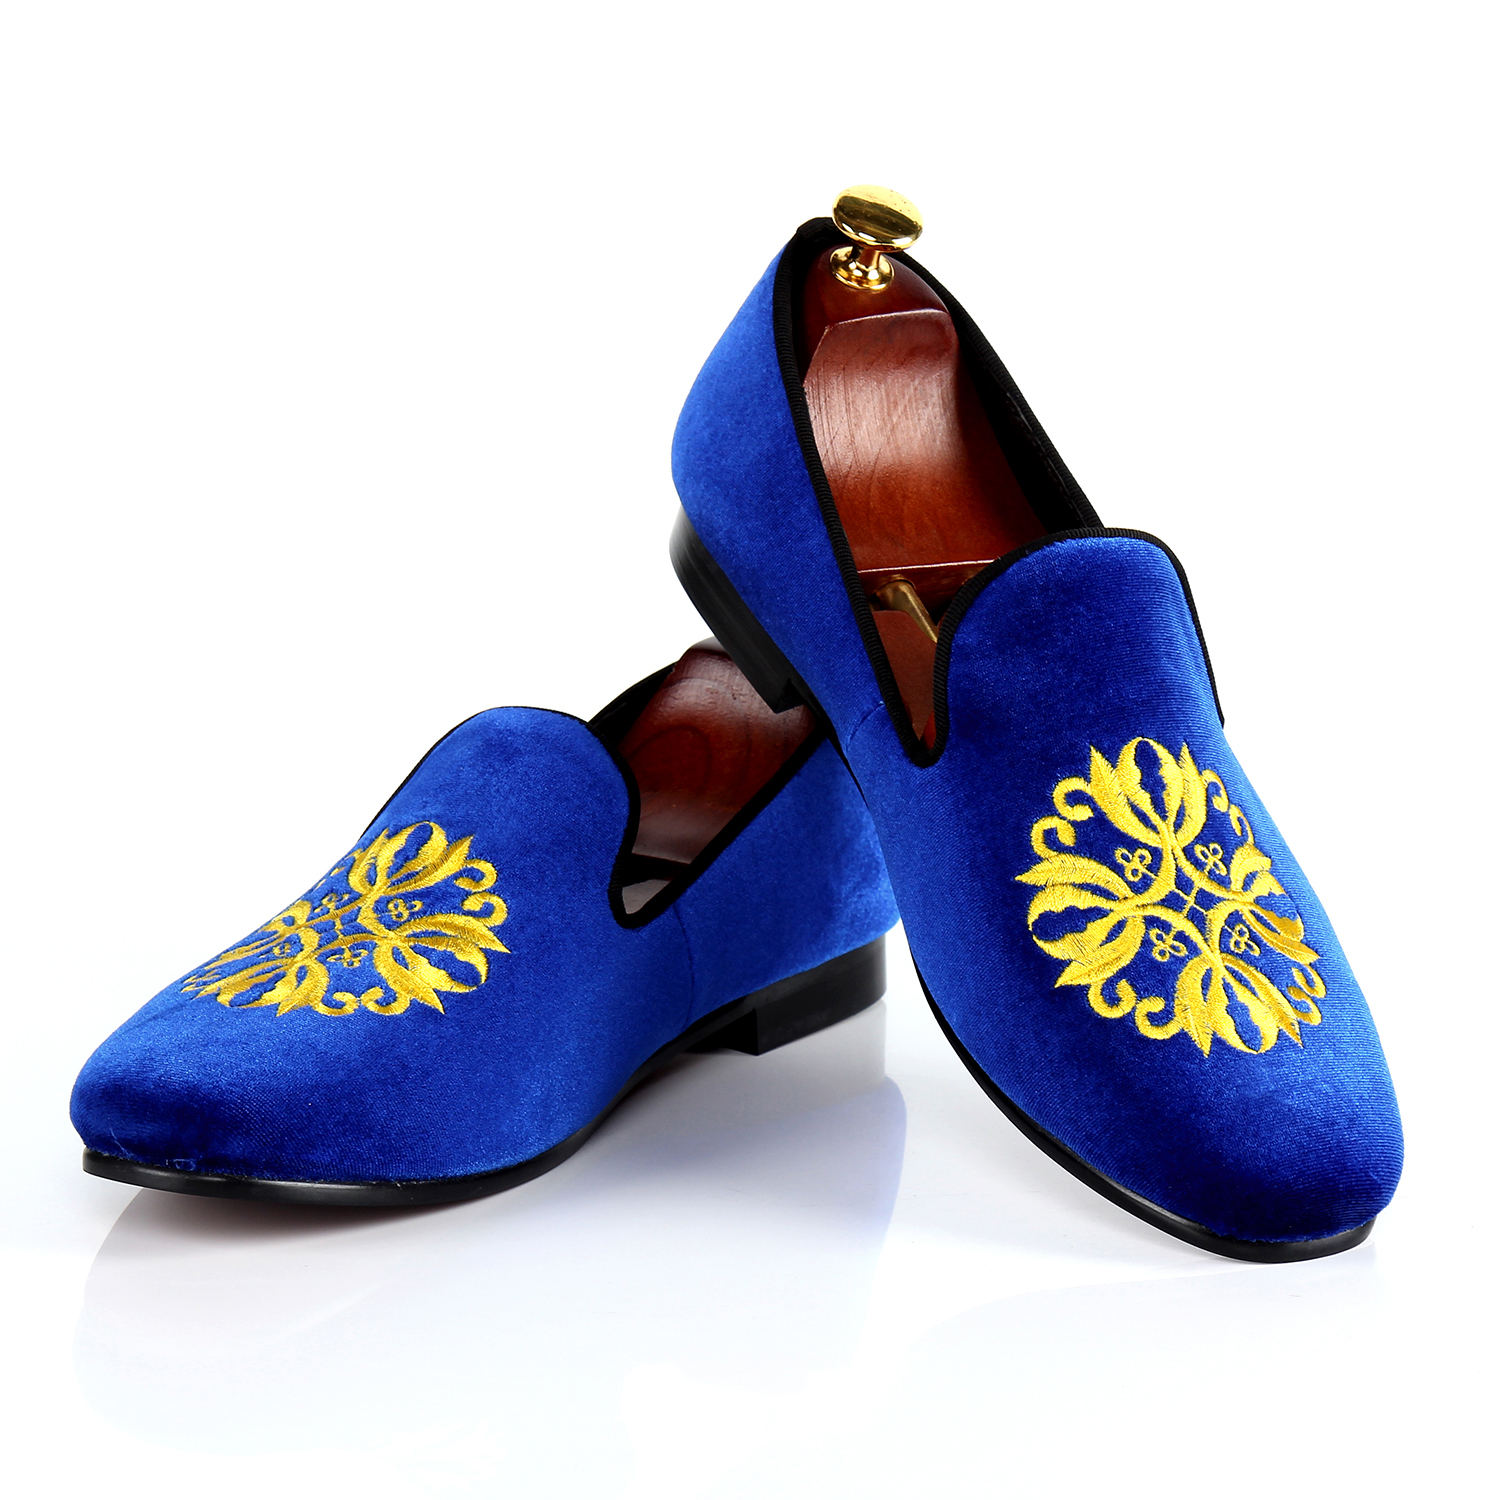 Harpelunde Italian Shoes Men Blue Velvet Slippers Motif Loafer Shoes For Wedding Leather lining 10-13 2016 girl 1 witch dress 1 hat cap princess party dresses tutu baby kids children clothing carnival halloween cosplay costume